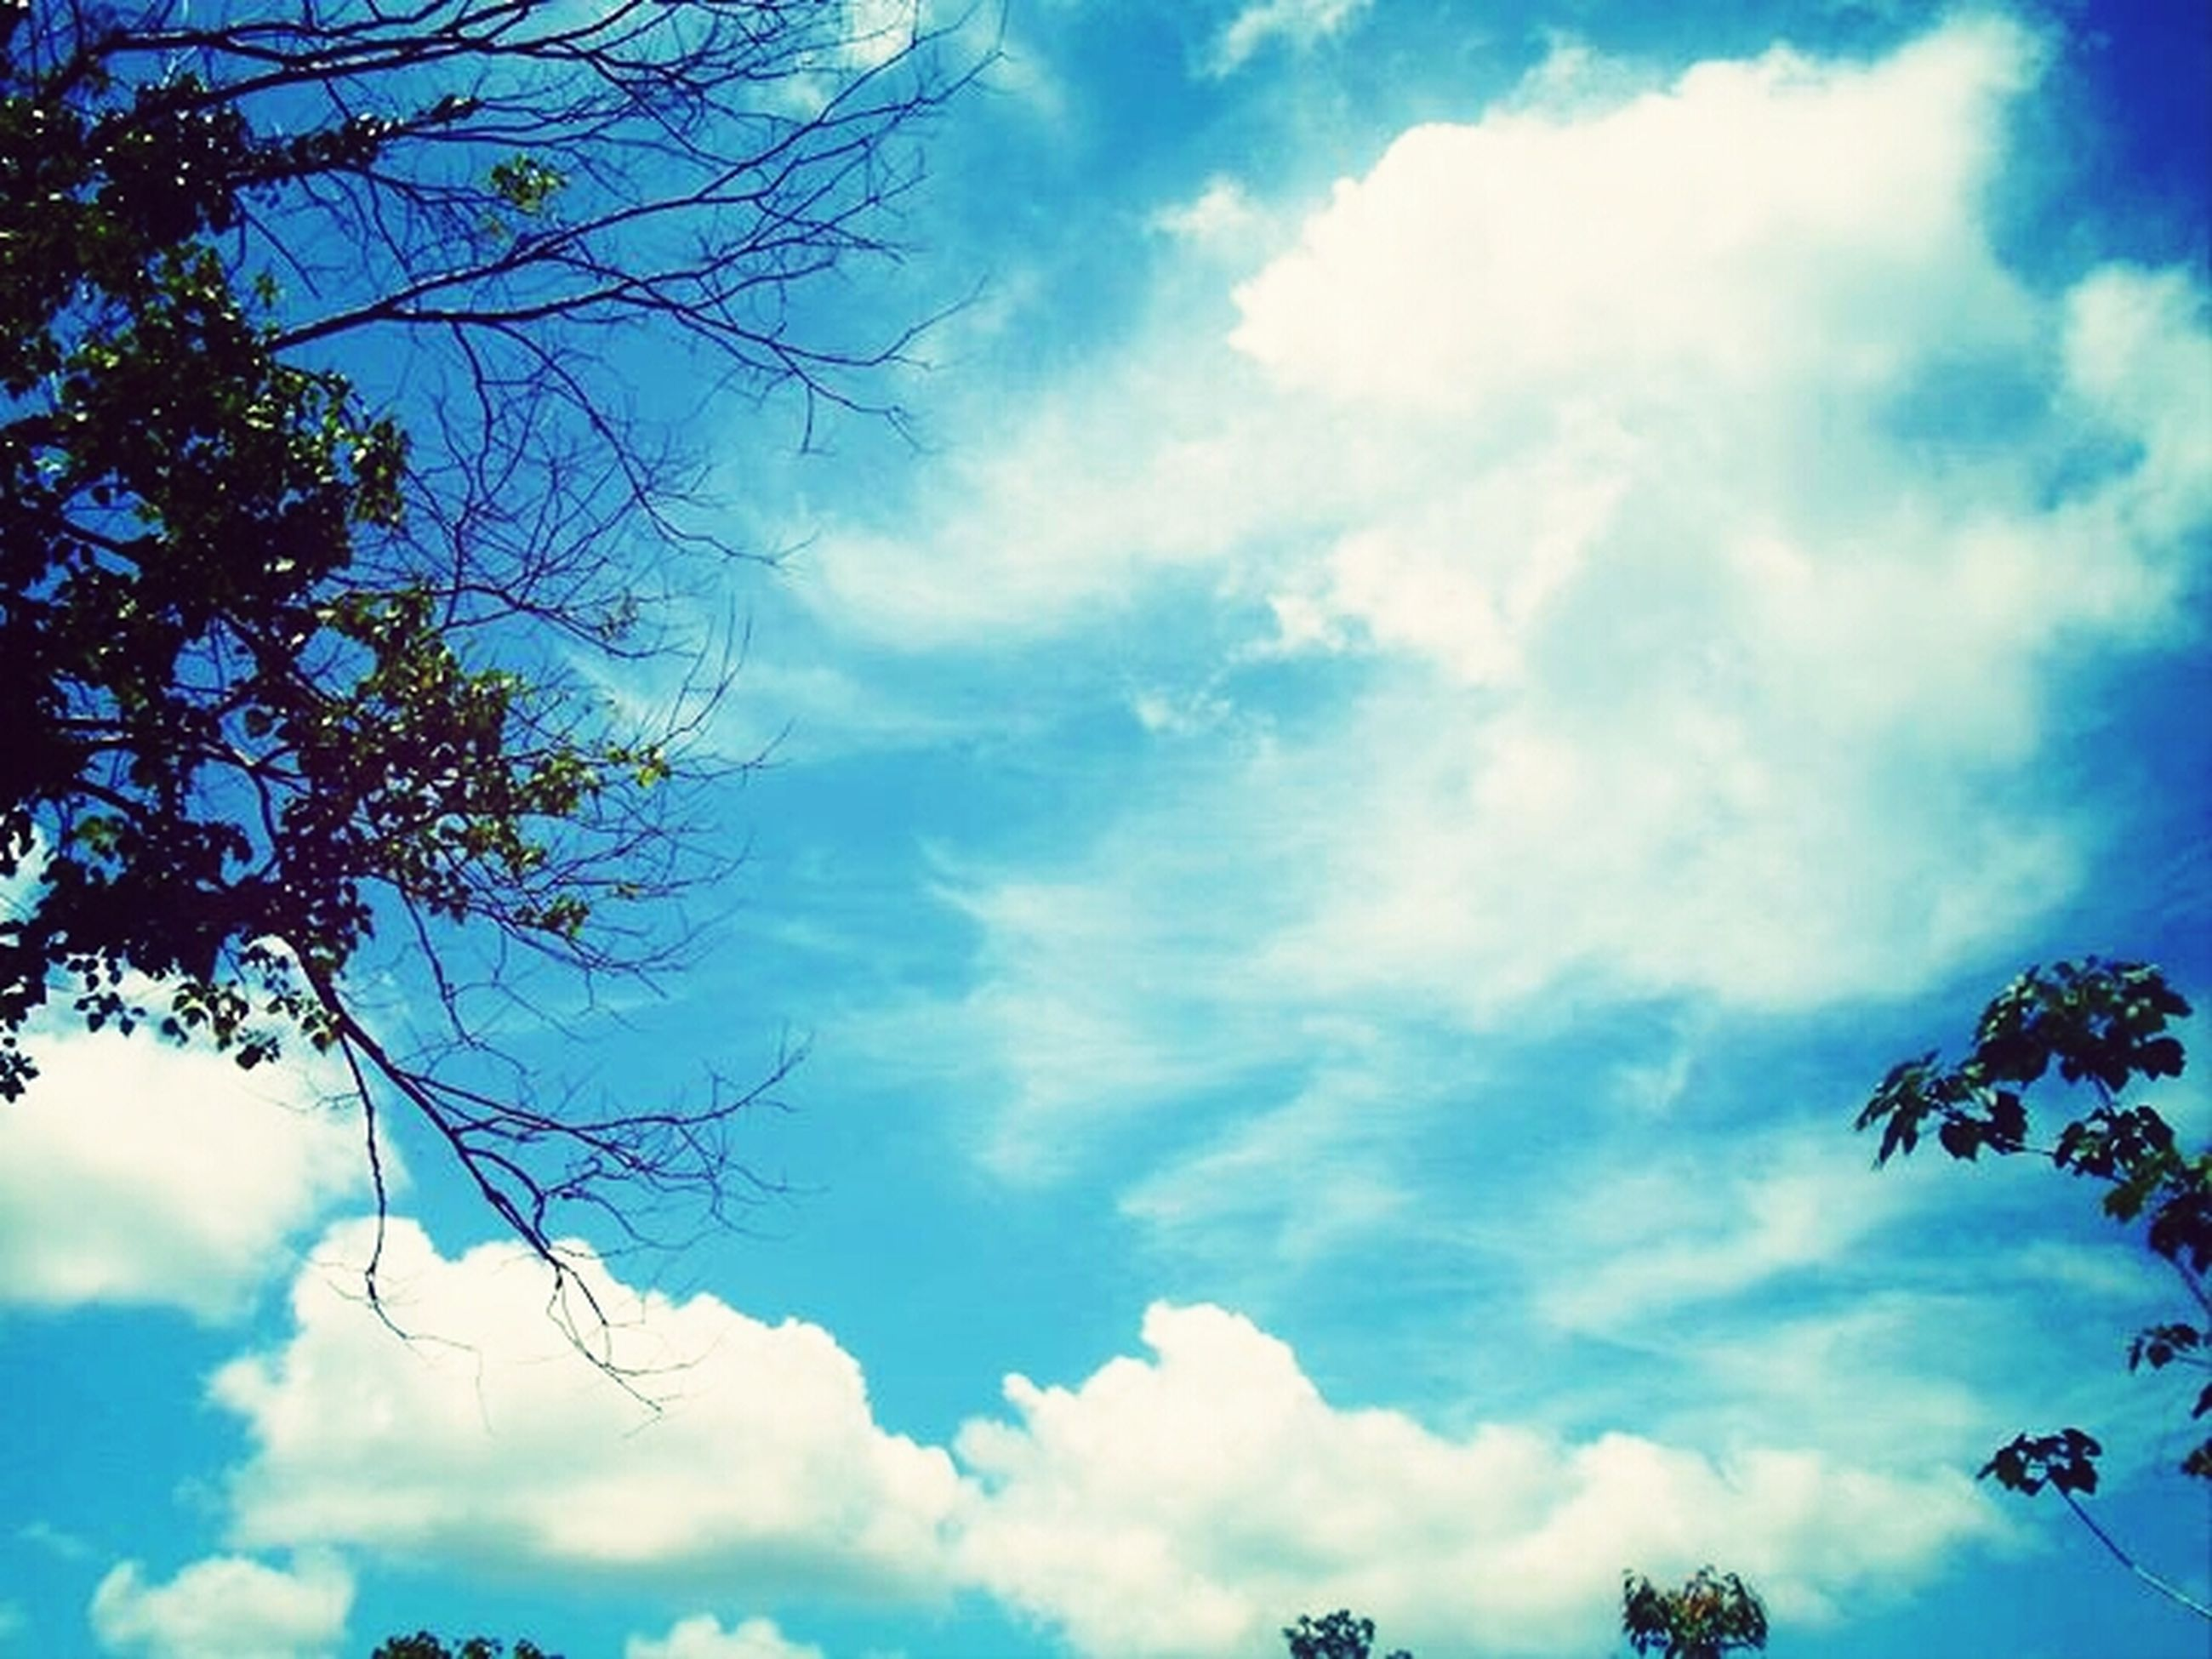 low angle view, sky, tree, cloud - sky, tranquility, beauty in nature, branch, cloudy, blue, nature, cloud, scenics, bare tree, tranquil scene, silhouette, growth, outdoors, no people, day, cloudscape